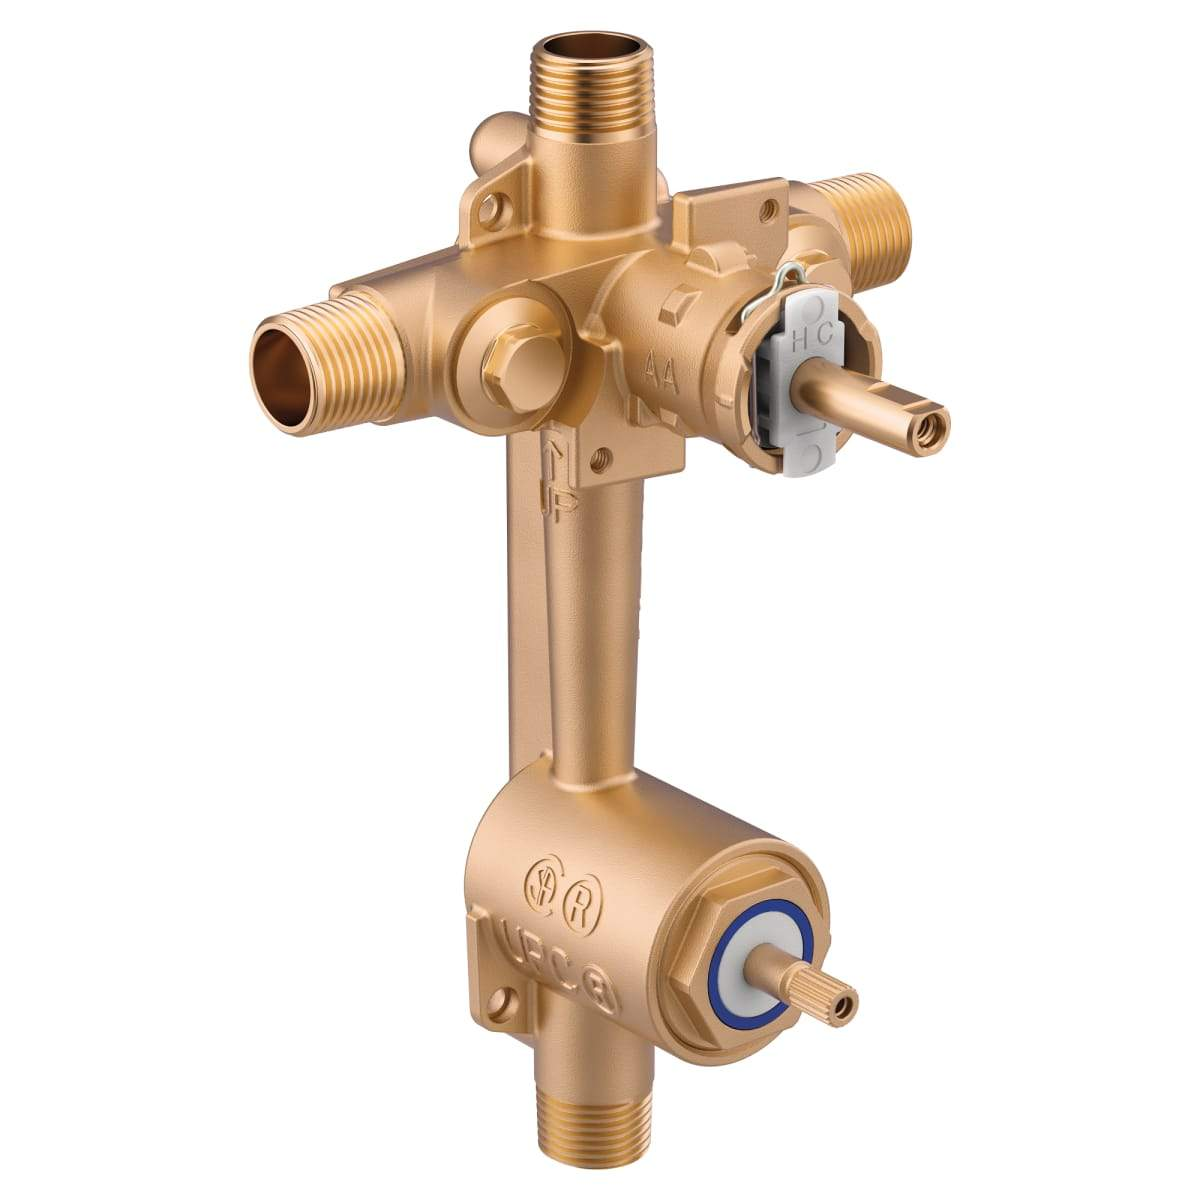 1/2 Inch IPS Pressure Balance Rough-In Valve with Diverter